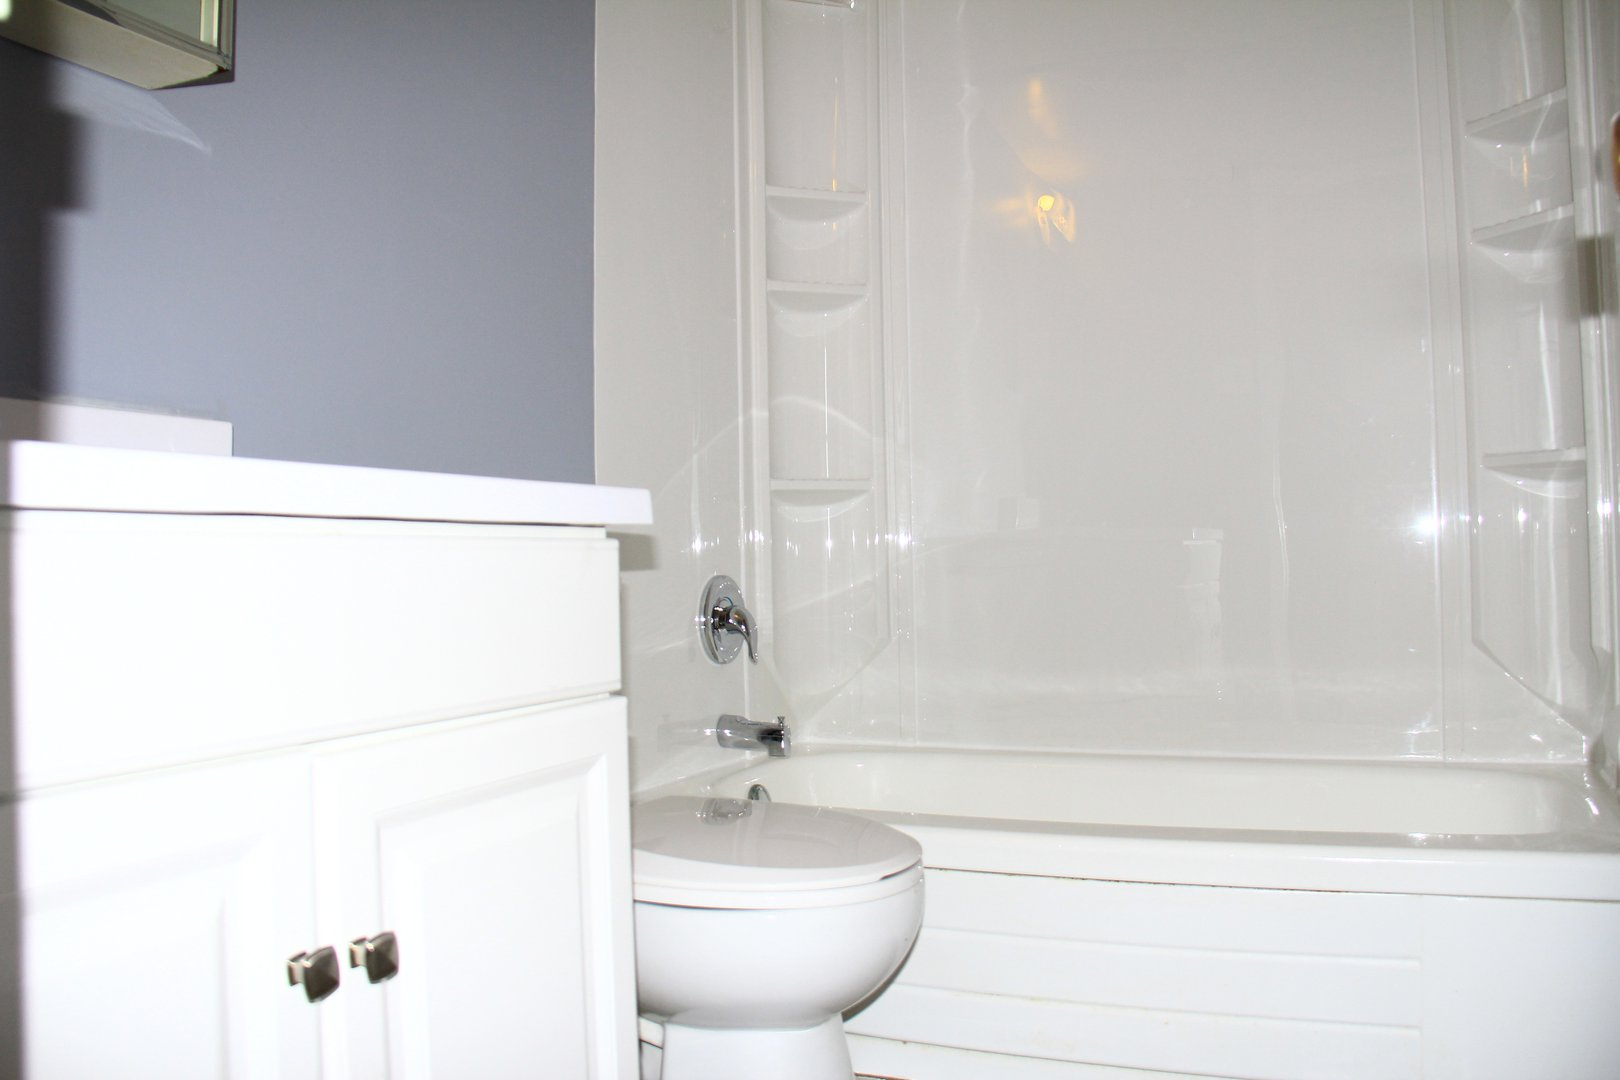 Apartment for rent at 141 Main St S, Brampton, ON. This is the bathroom.